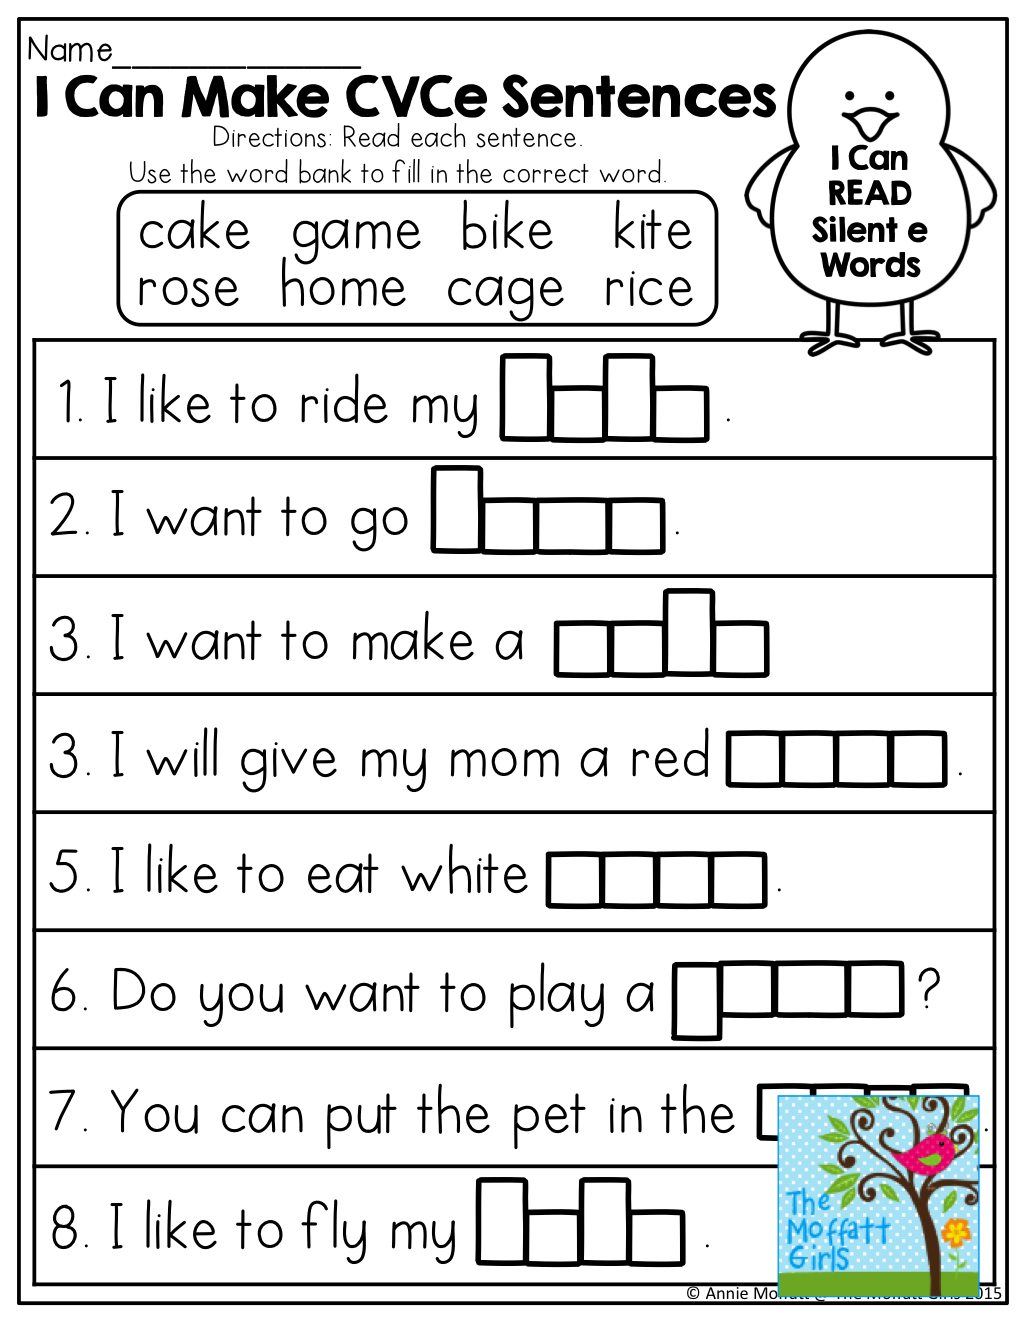 small resolution of Cloze Sentence Worksheets Free   Printable Worksheets and Activities for  Teachers